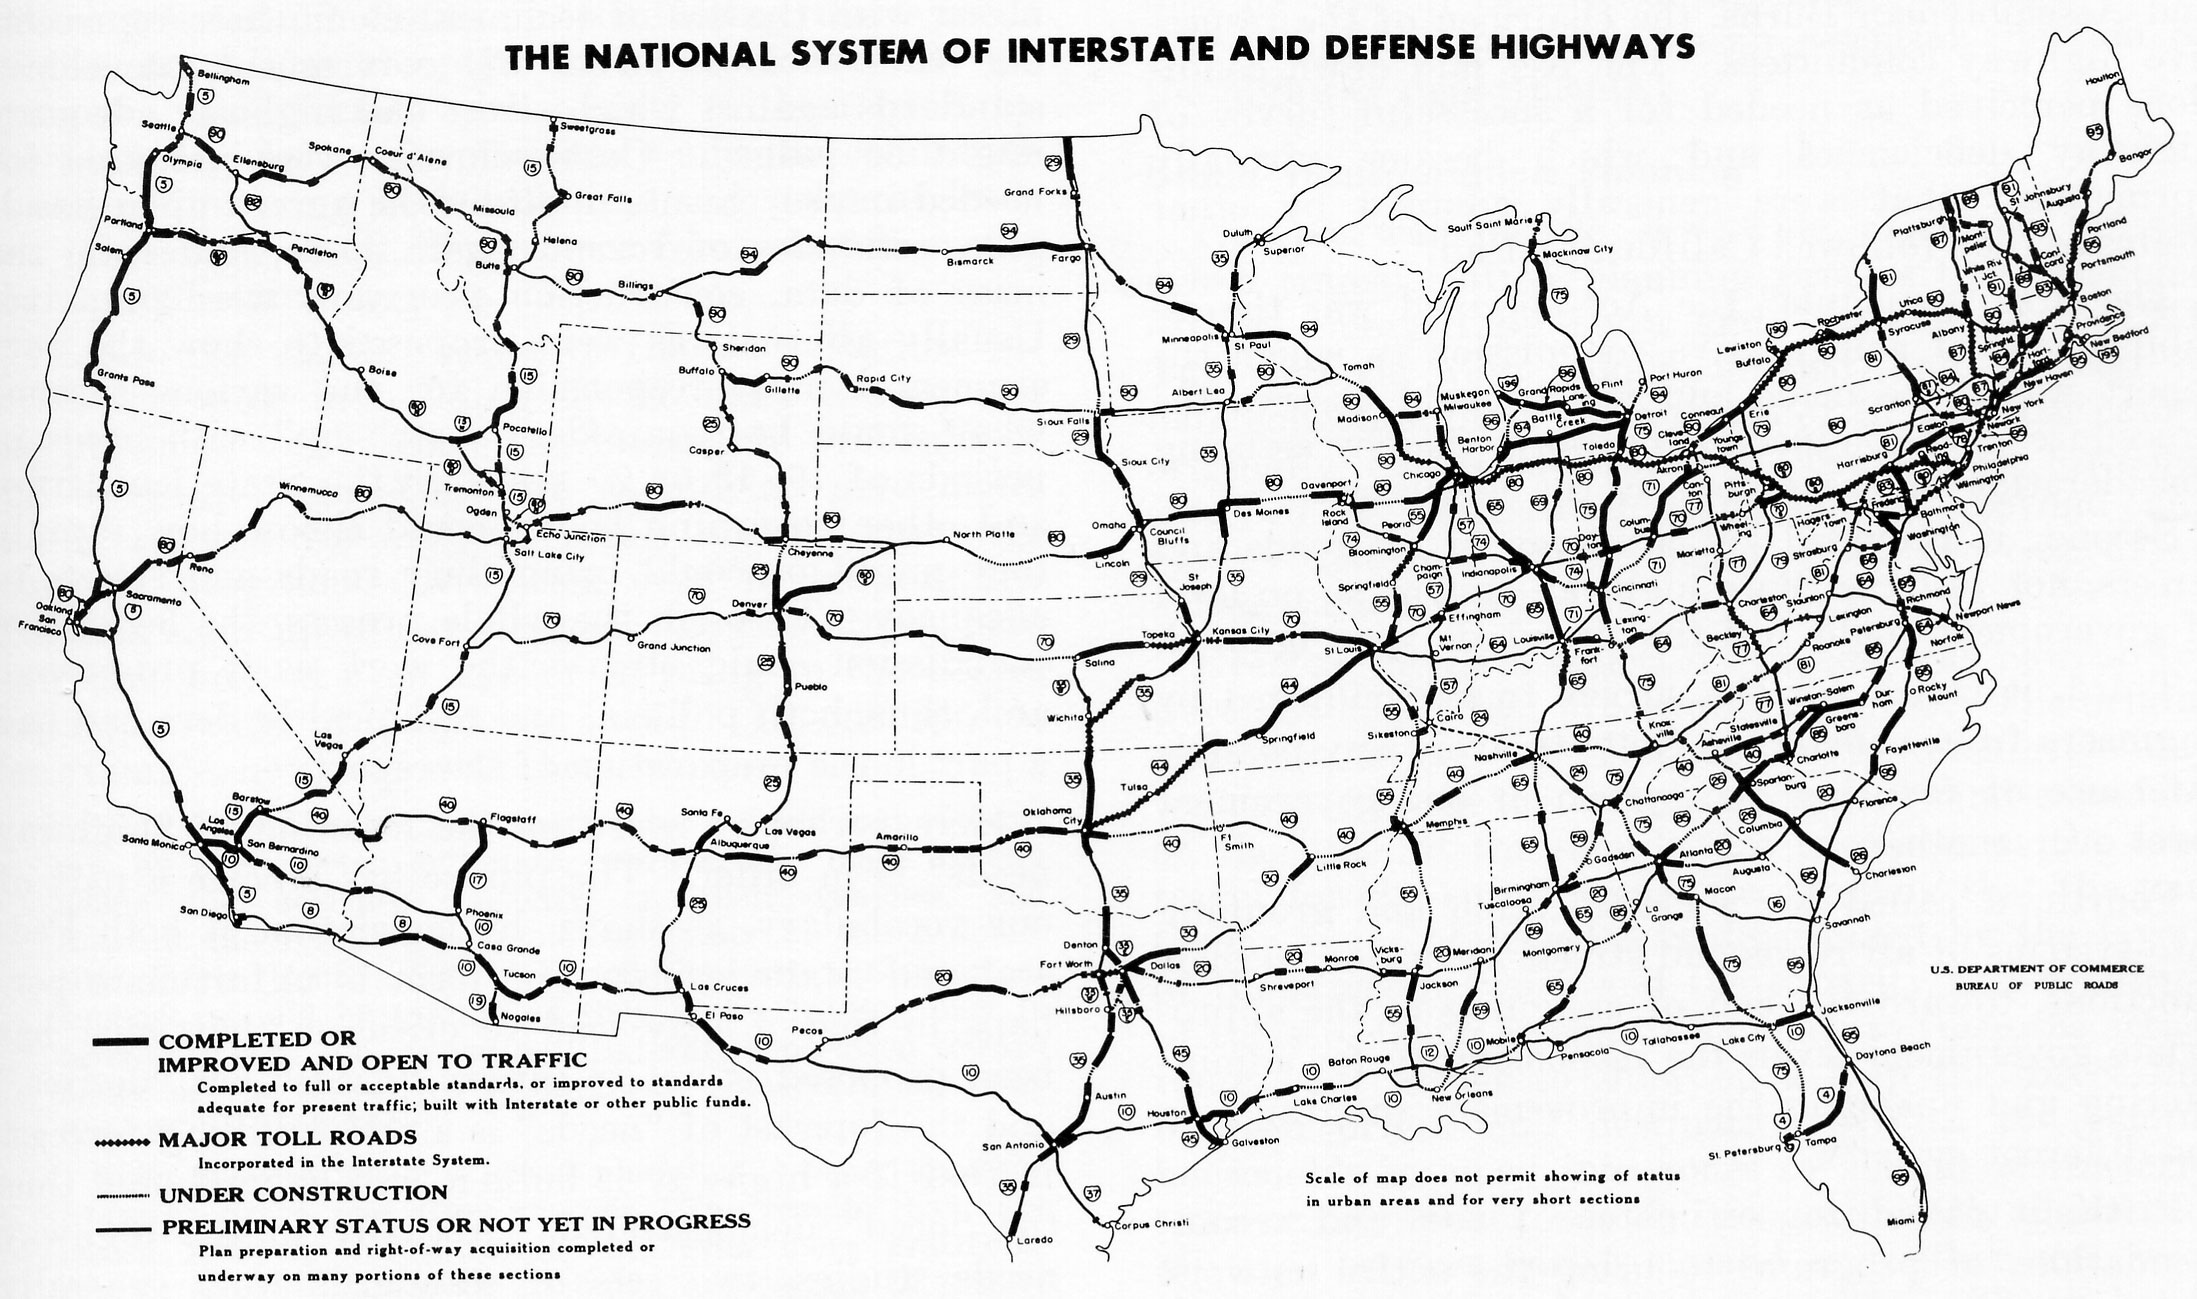 FileInterstate Highway status unknown datejpg  Wikimedia Commons